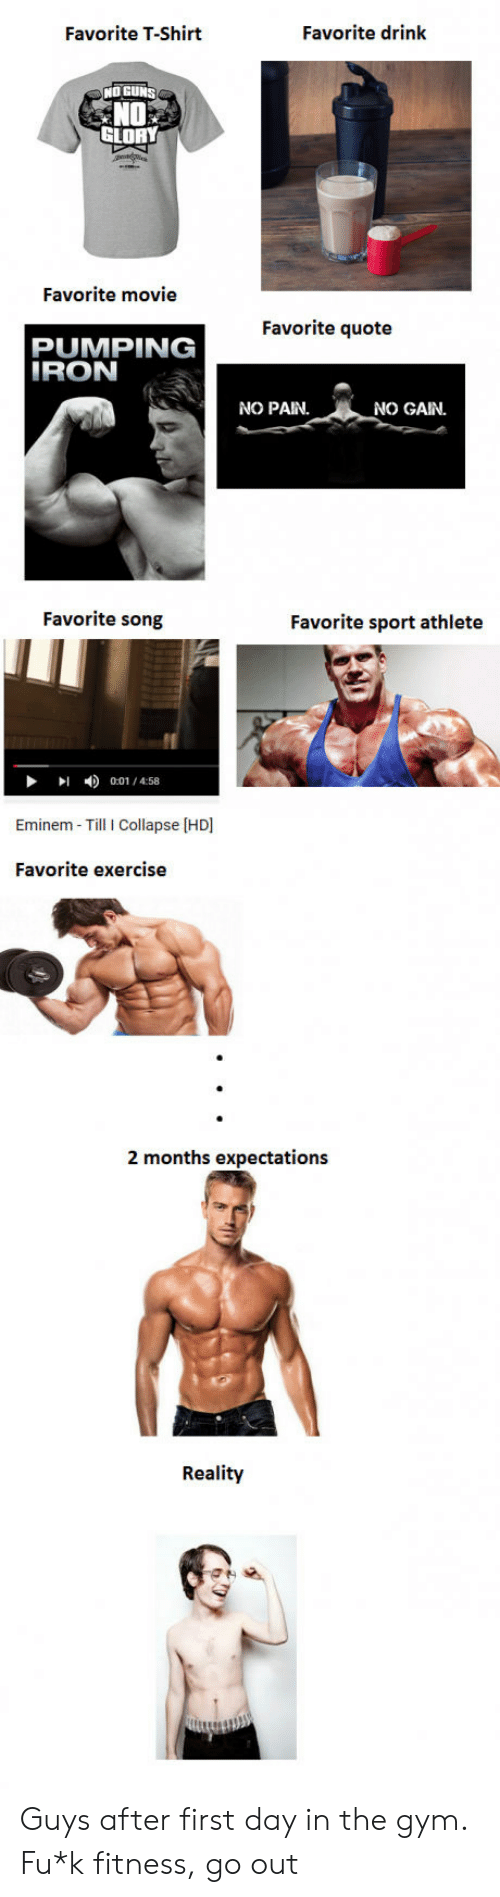 Eminem, Guns, and Gym: Favorite T-Shirt  Favorite drink  NO GUNS  NO  SLORY  Favorite movie  Favorite quote  PUMPING  NO PAN.  NO GAIN.  Favorite song  Favorite sport athlete  钏  4)  0:01 / 4:58  Eminem- Till I Collapse [HD  Favorite exercise  2 months expectations  Reality Guys after first day in the gym. Fu*k fitness, go out